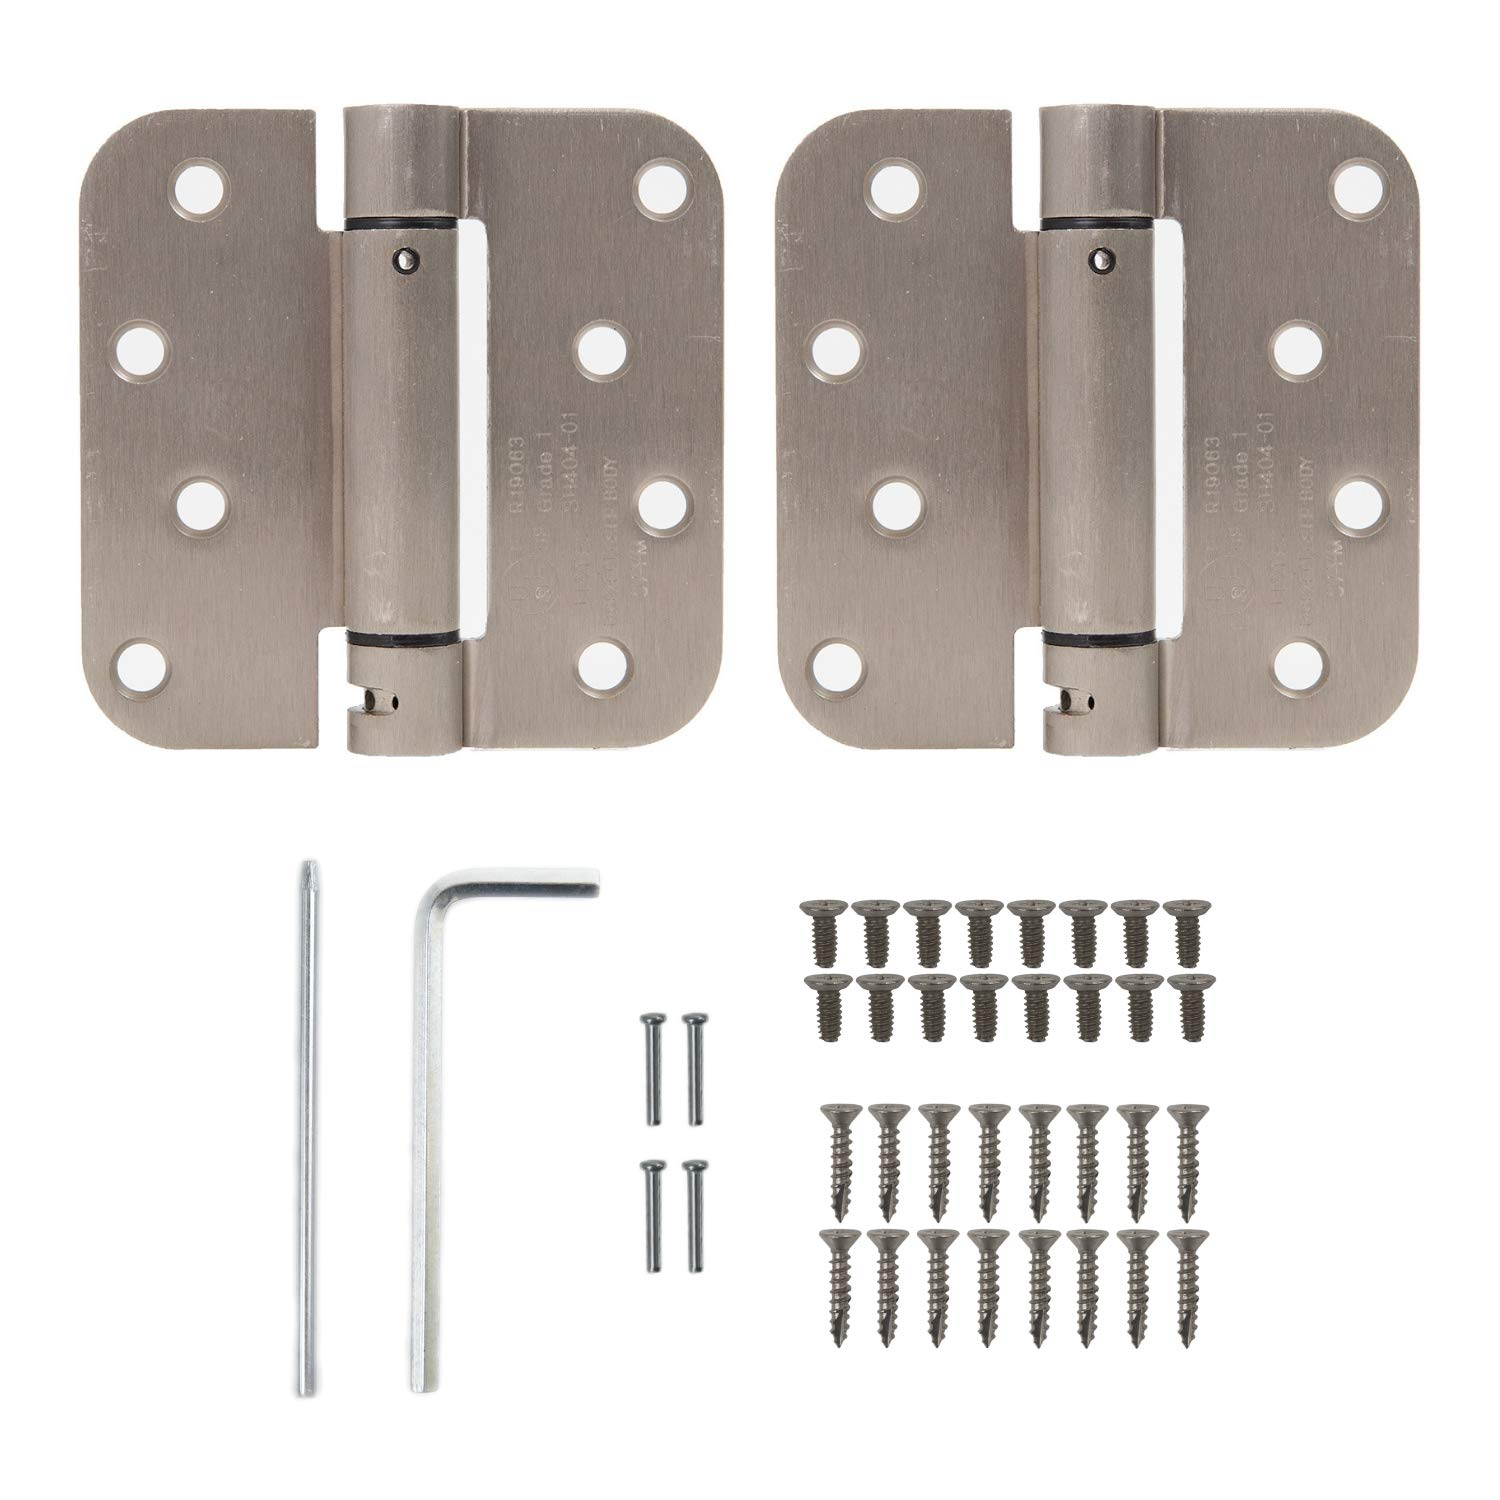 """Houseables Self Closing Door Hinges, Mortise Spring Hinge, 5/8"""" Radius Corner, 4"""" x 4"""", 2 Pack, 2.7 MM, Satin Nickel Finish, Automatic Closer, Adjustable, Tension Loaded, Auto Close Pin, Heavy Duty"""